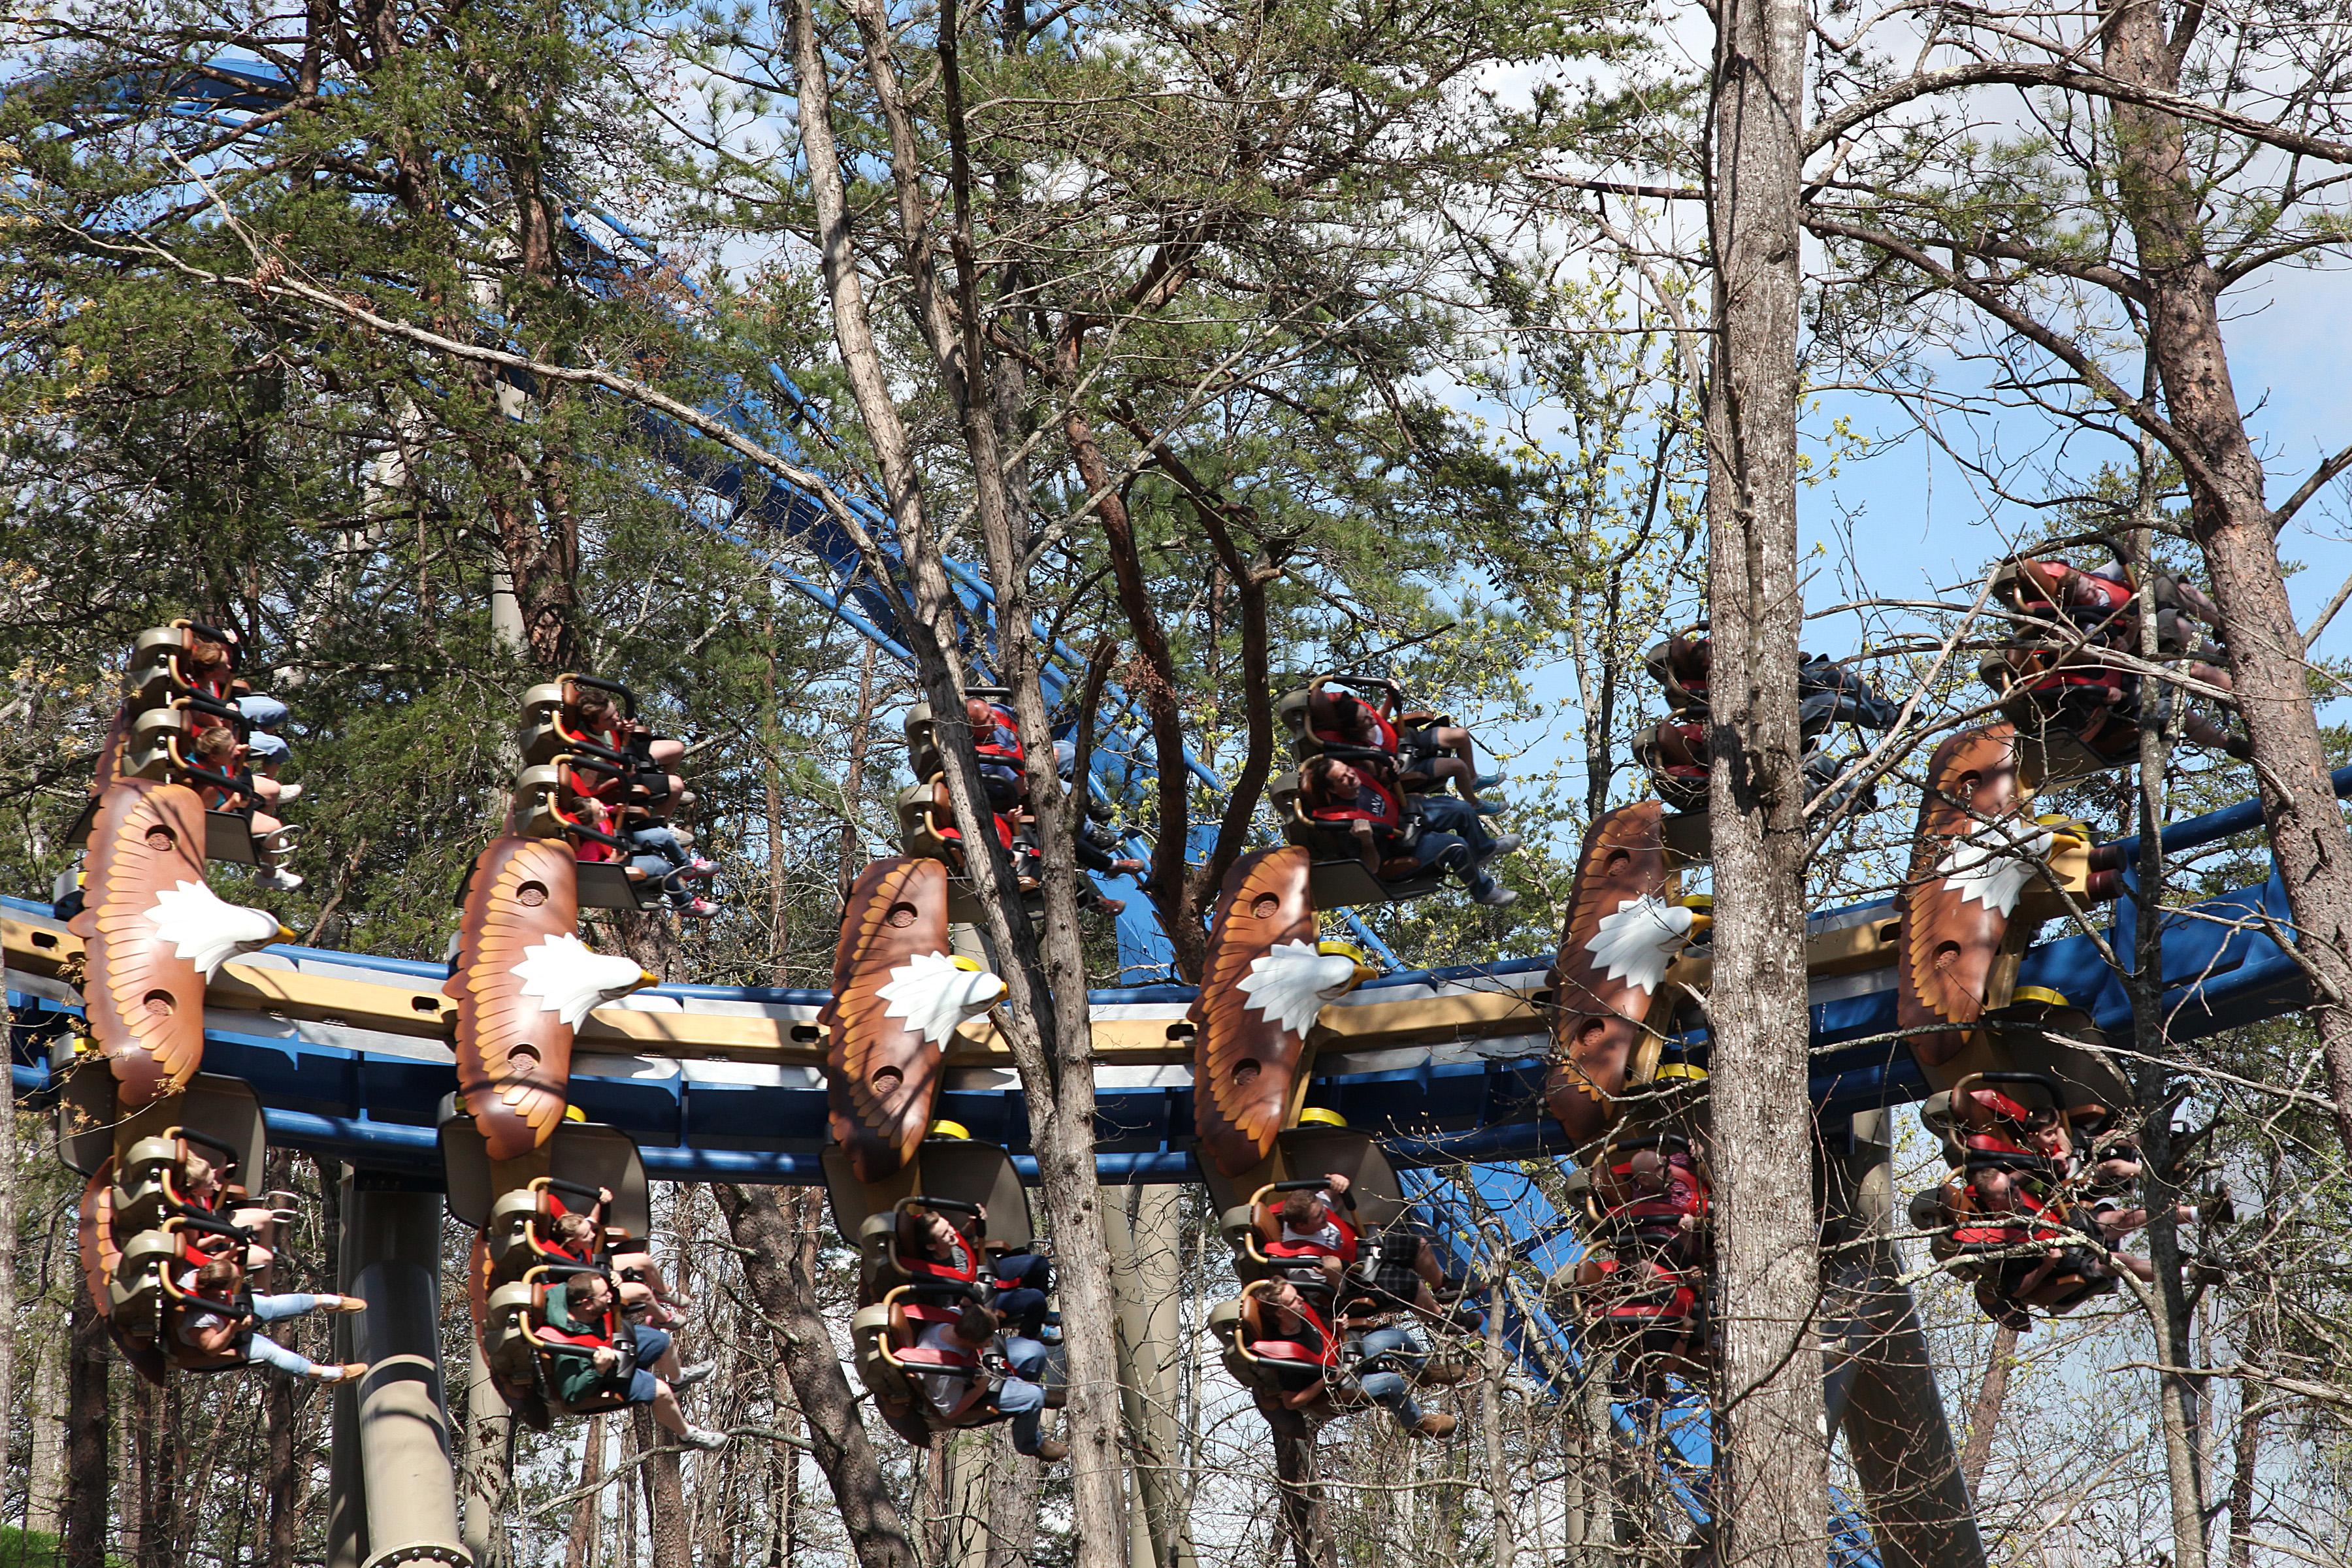 America's First Wing Coaster